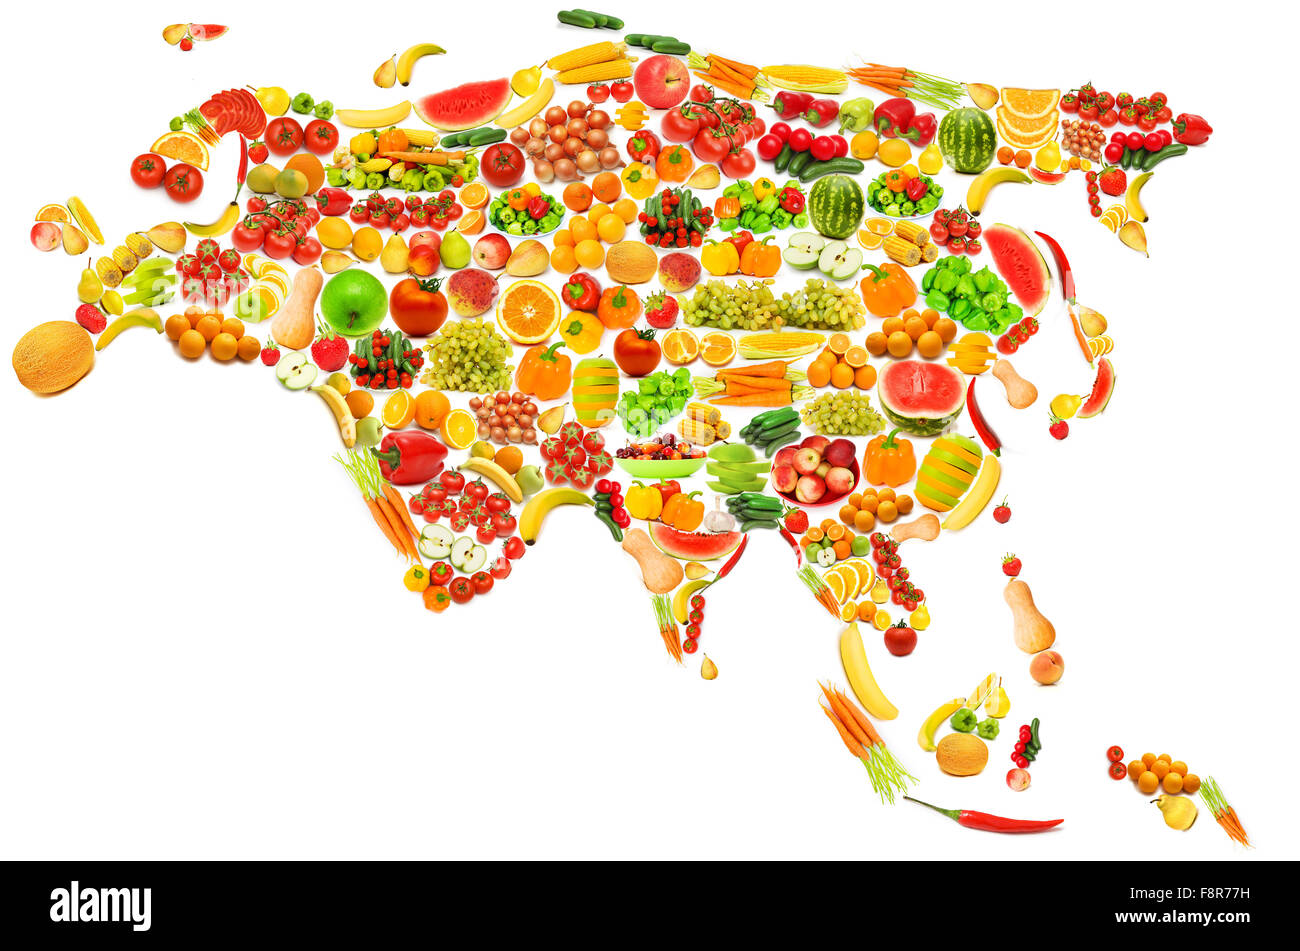 World map made of many fruits and vegetables - Stock Image